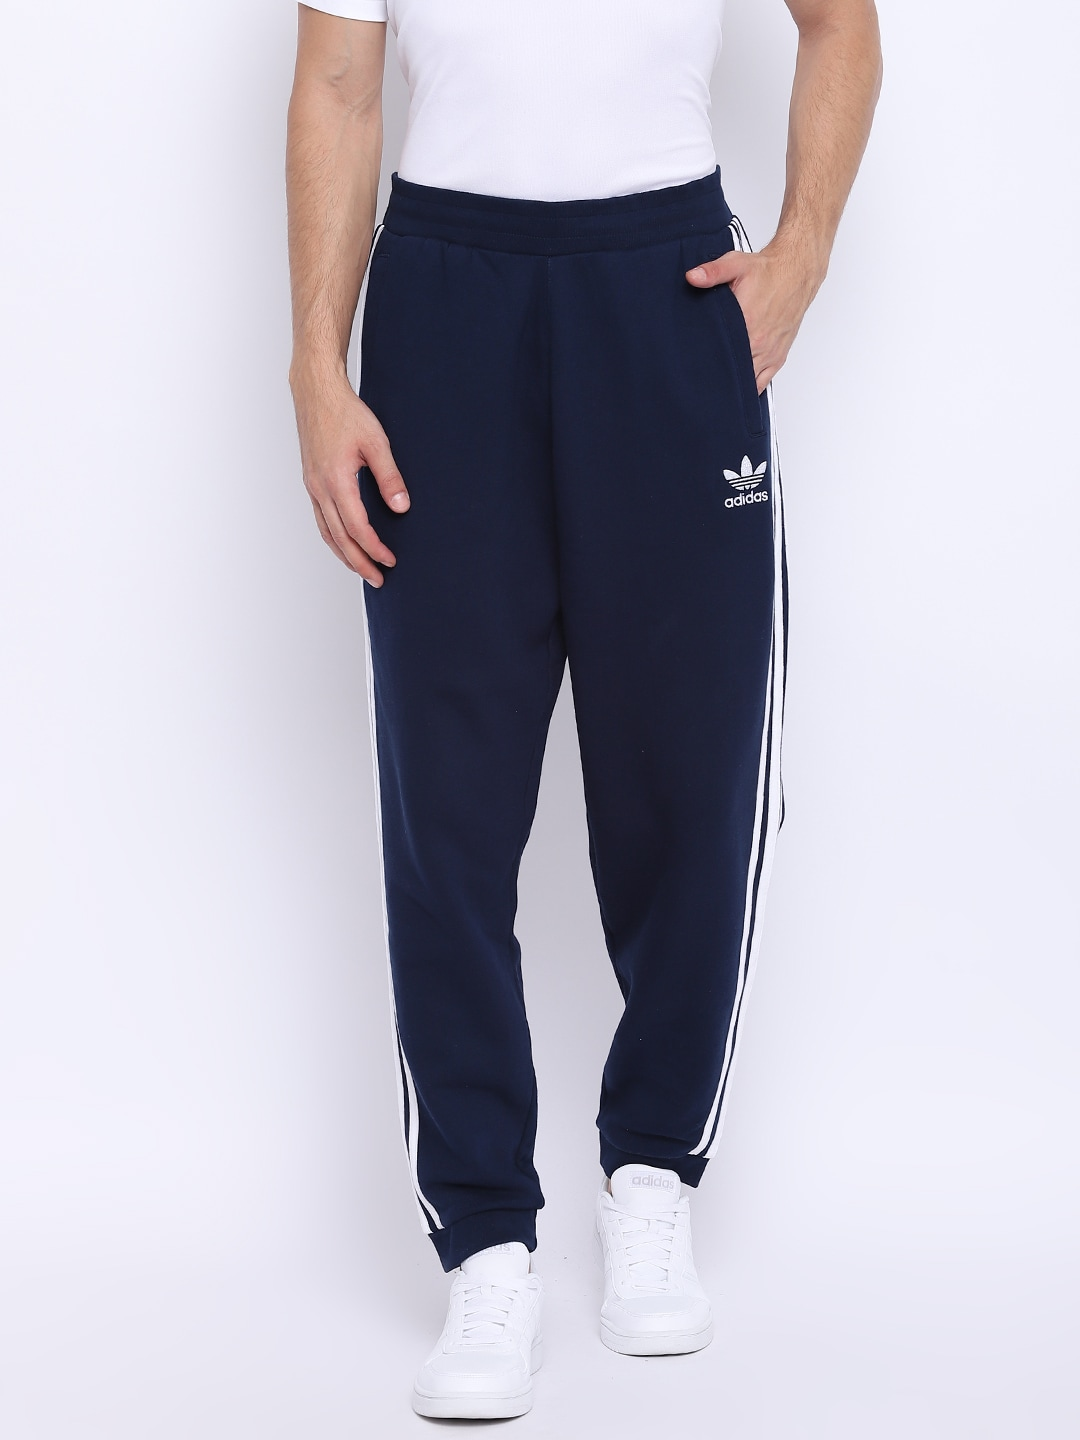 f119078d13aa Adidas Originals Track Pants - Buy Adidas Originals Track Pants Online